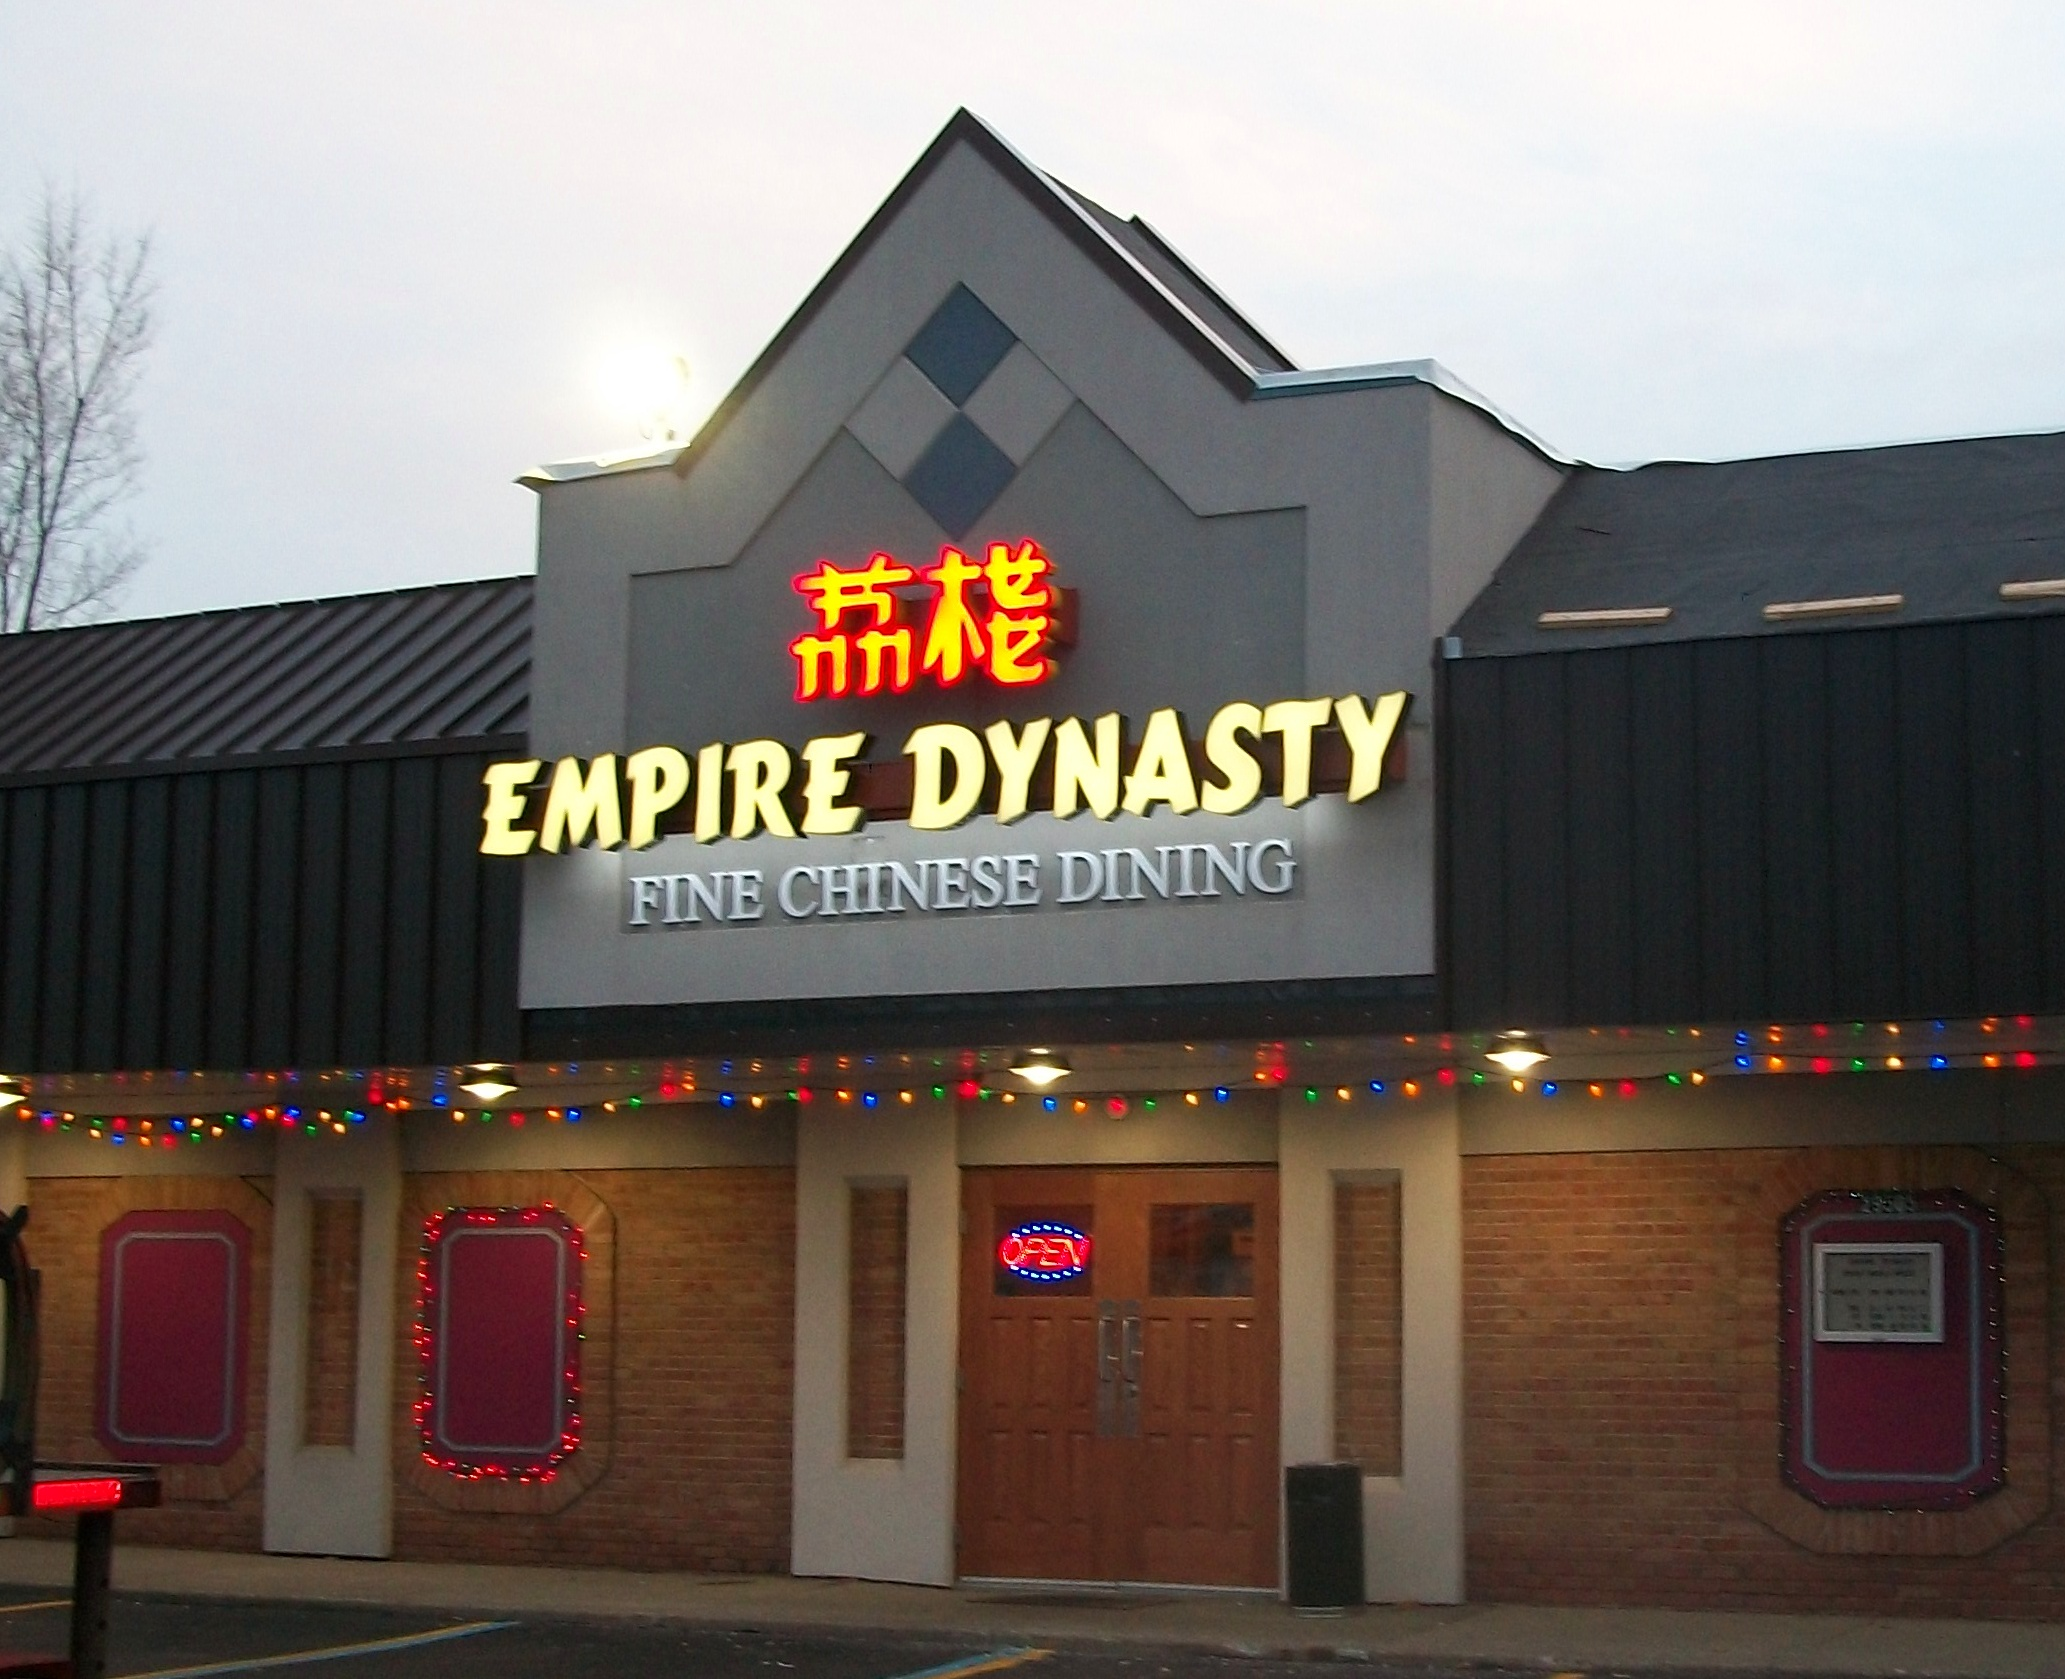 Empire Dynasty - Channel Letters